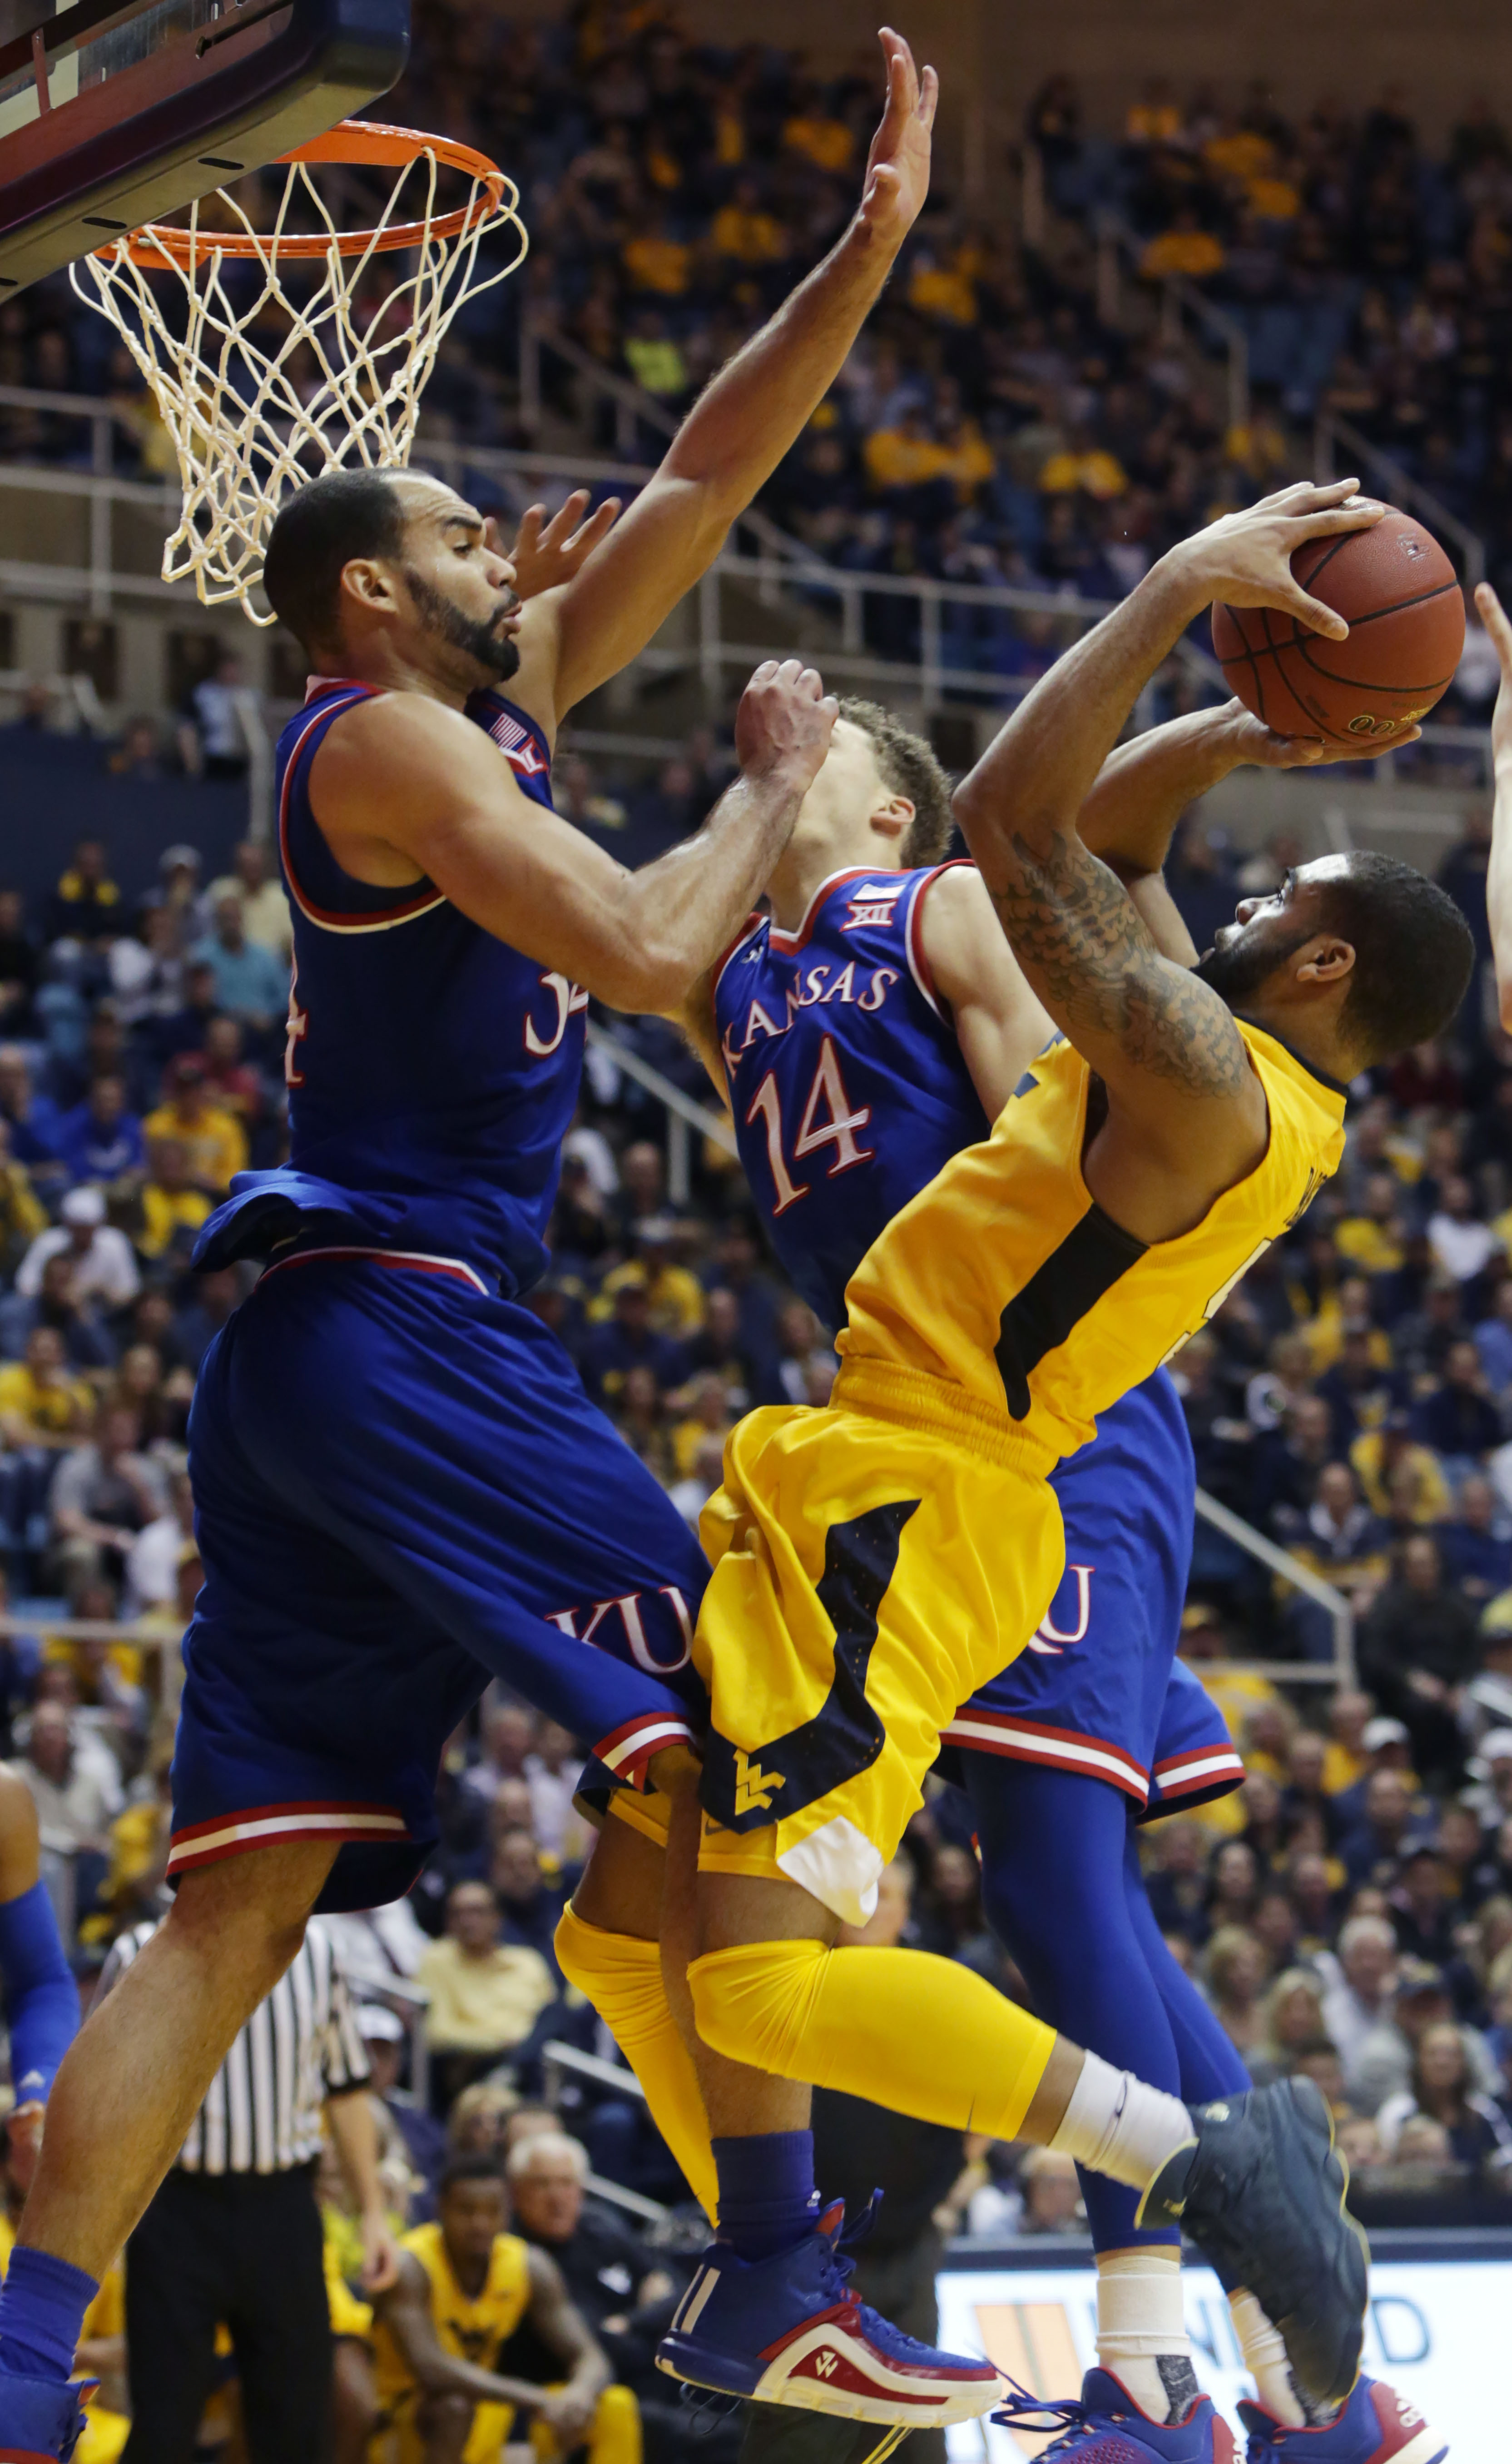 West Virginia guard Jaysean Paige (5) takes a shot while being defended by Kansas forward Perry Ellis (34) during the second half of an NCAA college basketball game, Tuesday, Jan, 12, 2016, in Morgantown, W.Va. West Virginia defeated Kansas 74-63. (AP Pho